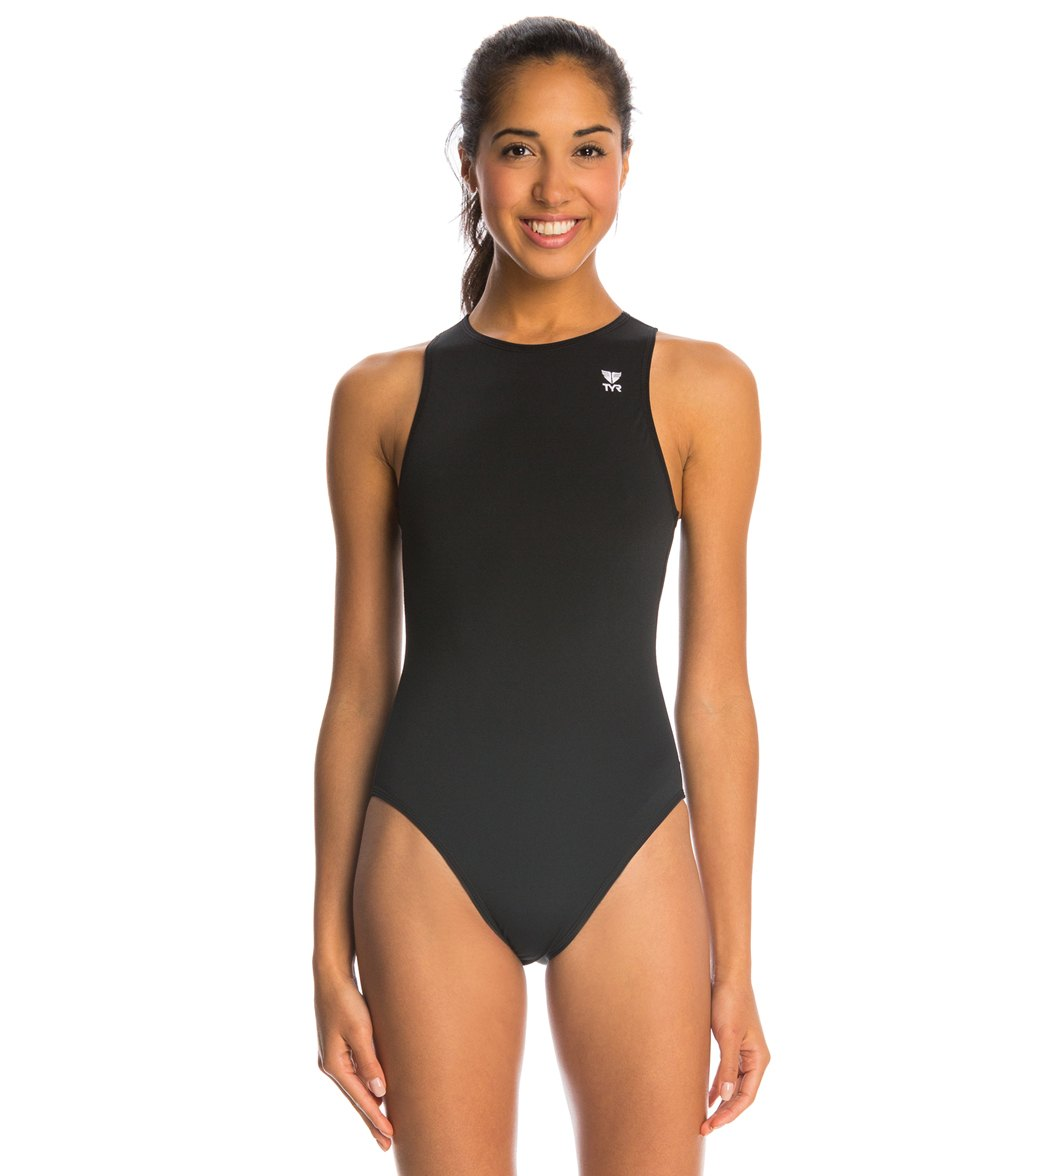 polo bathing suits on sale